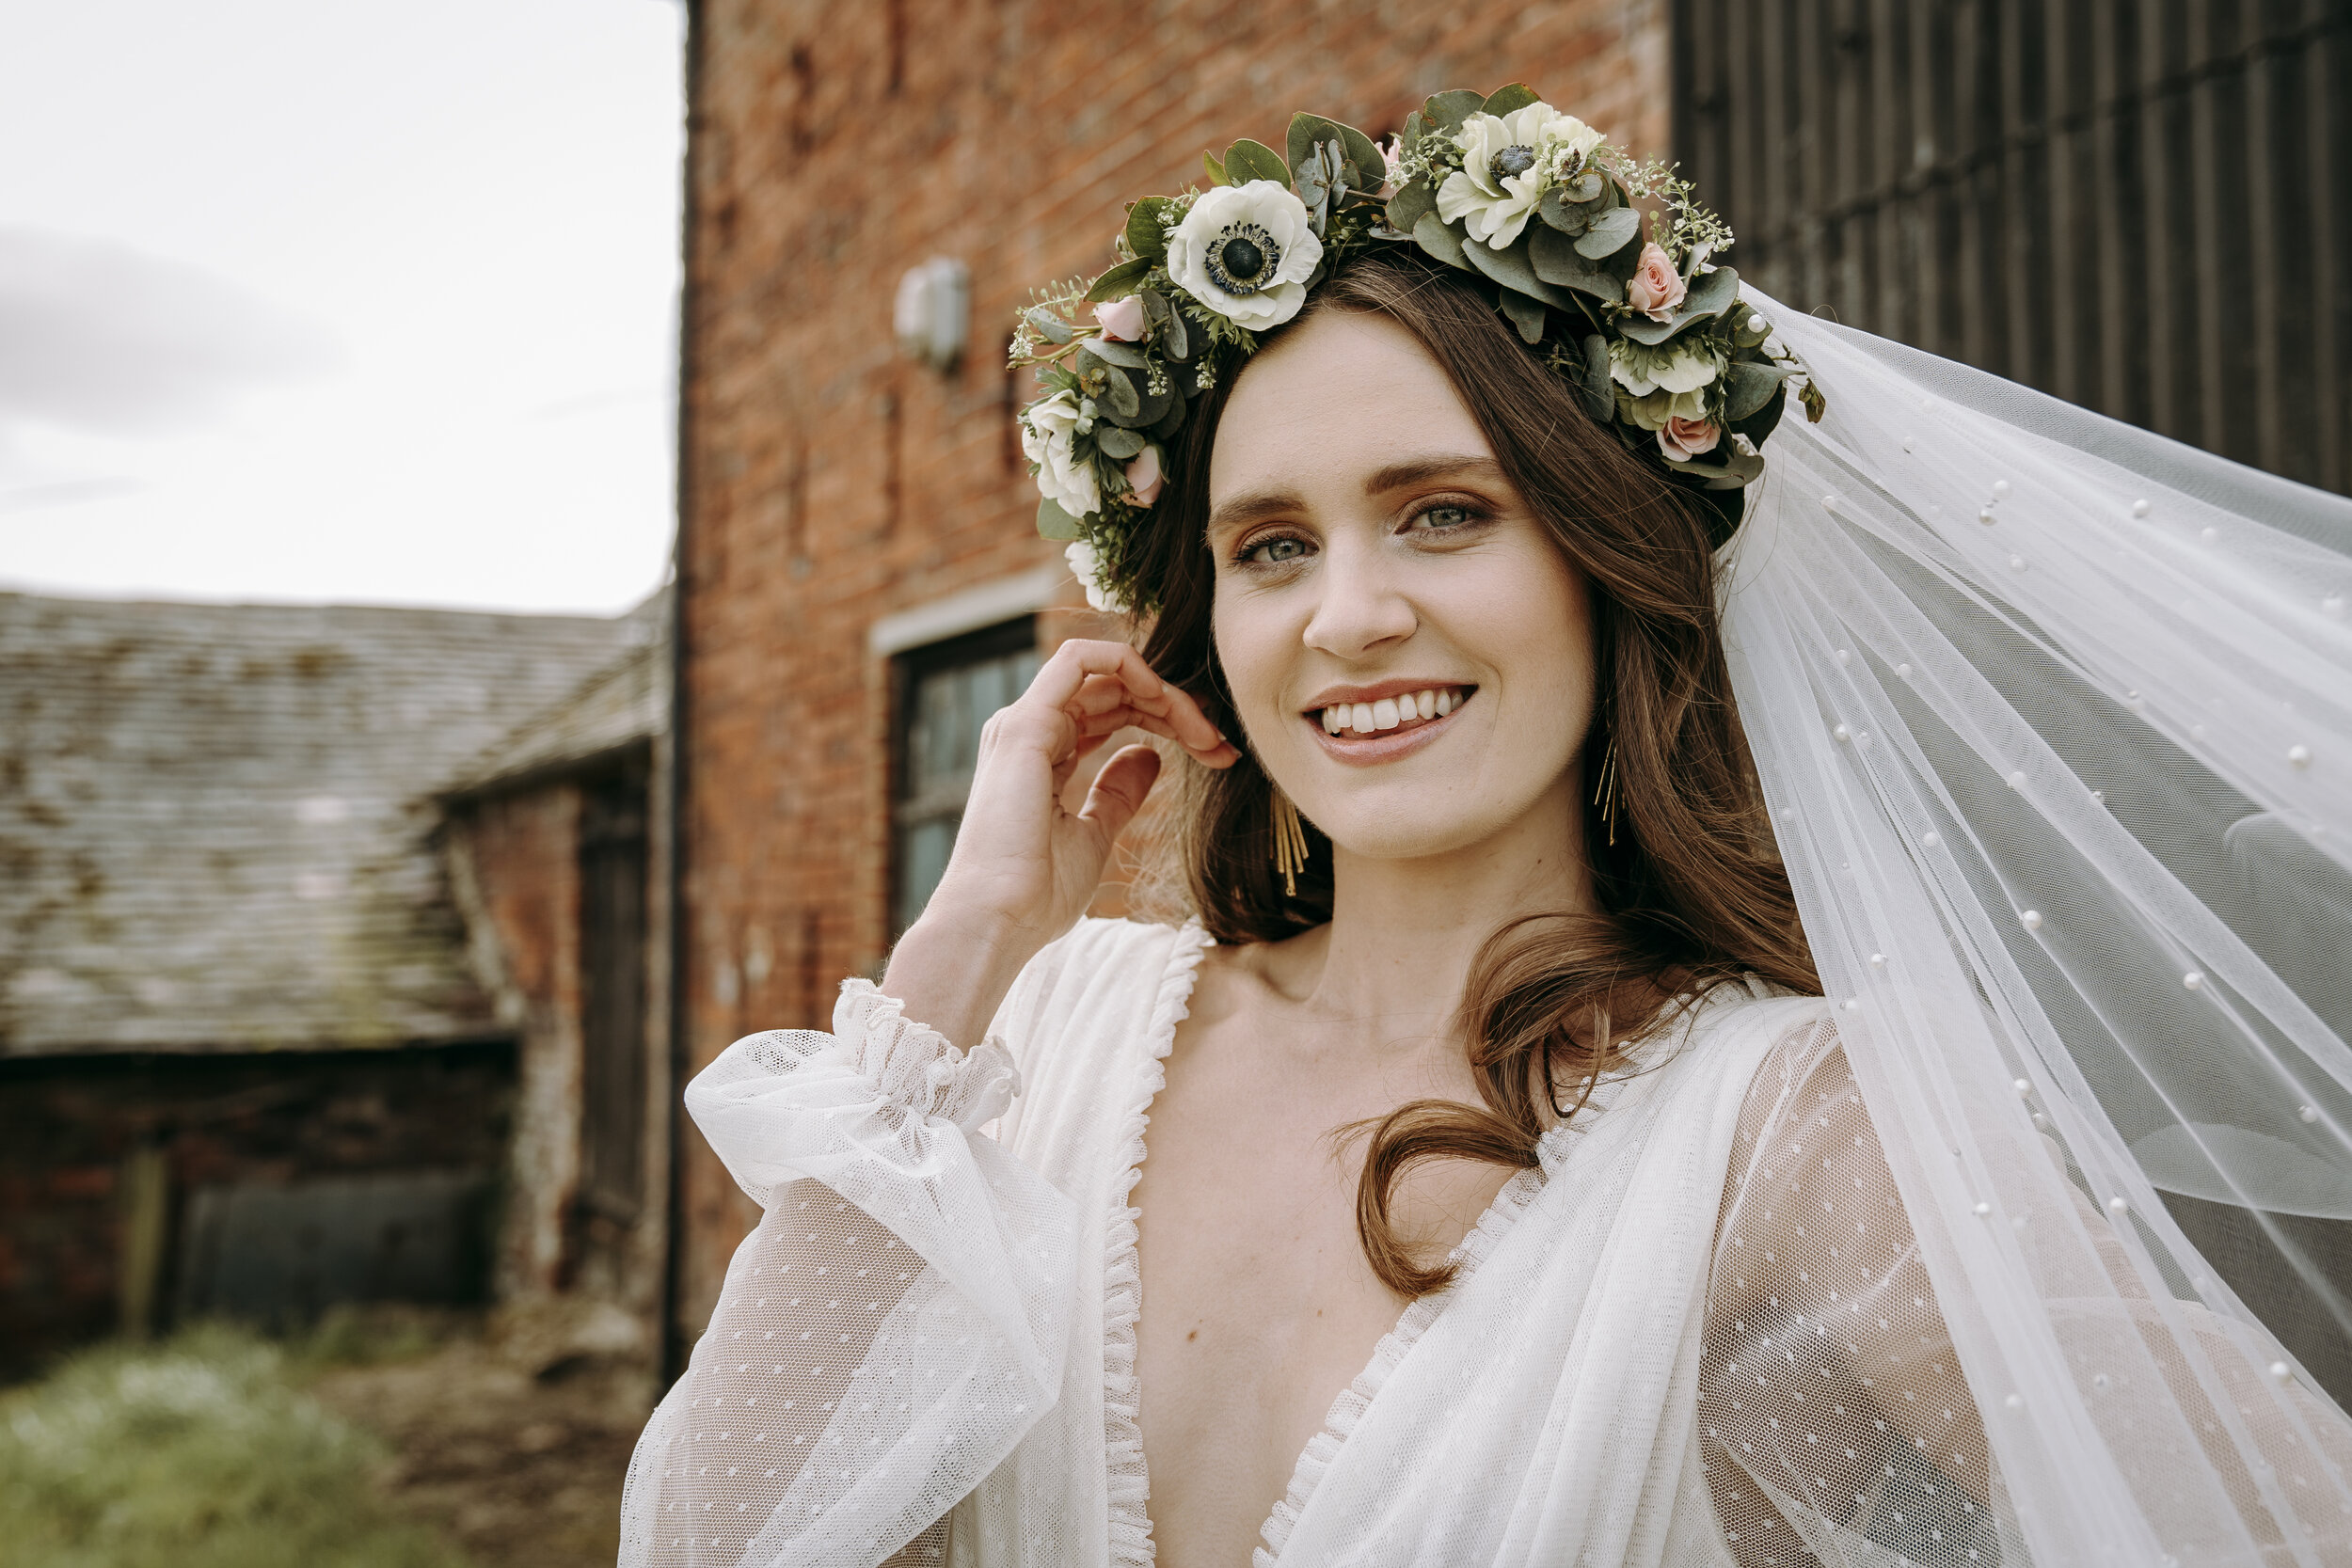 Bridal portraits, The Kedleston Country House